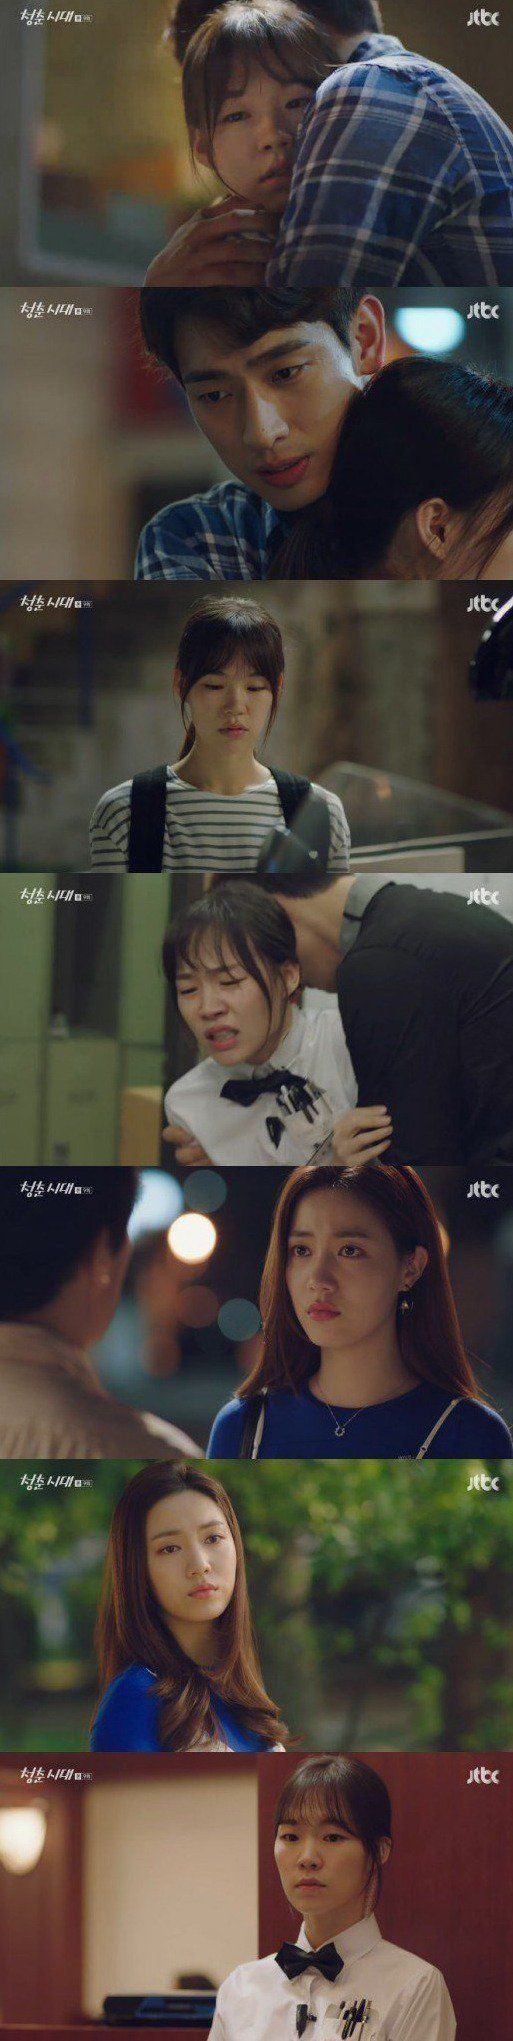 Added episodes 9 and 10 captures for the Korean drama 'Age of Youth'.